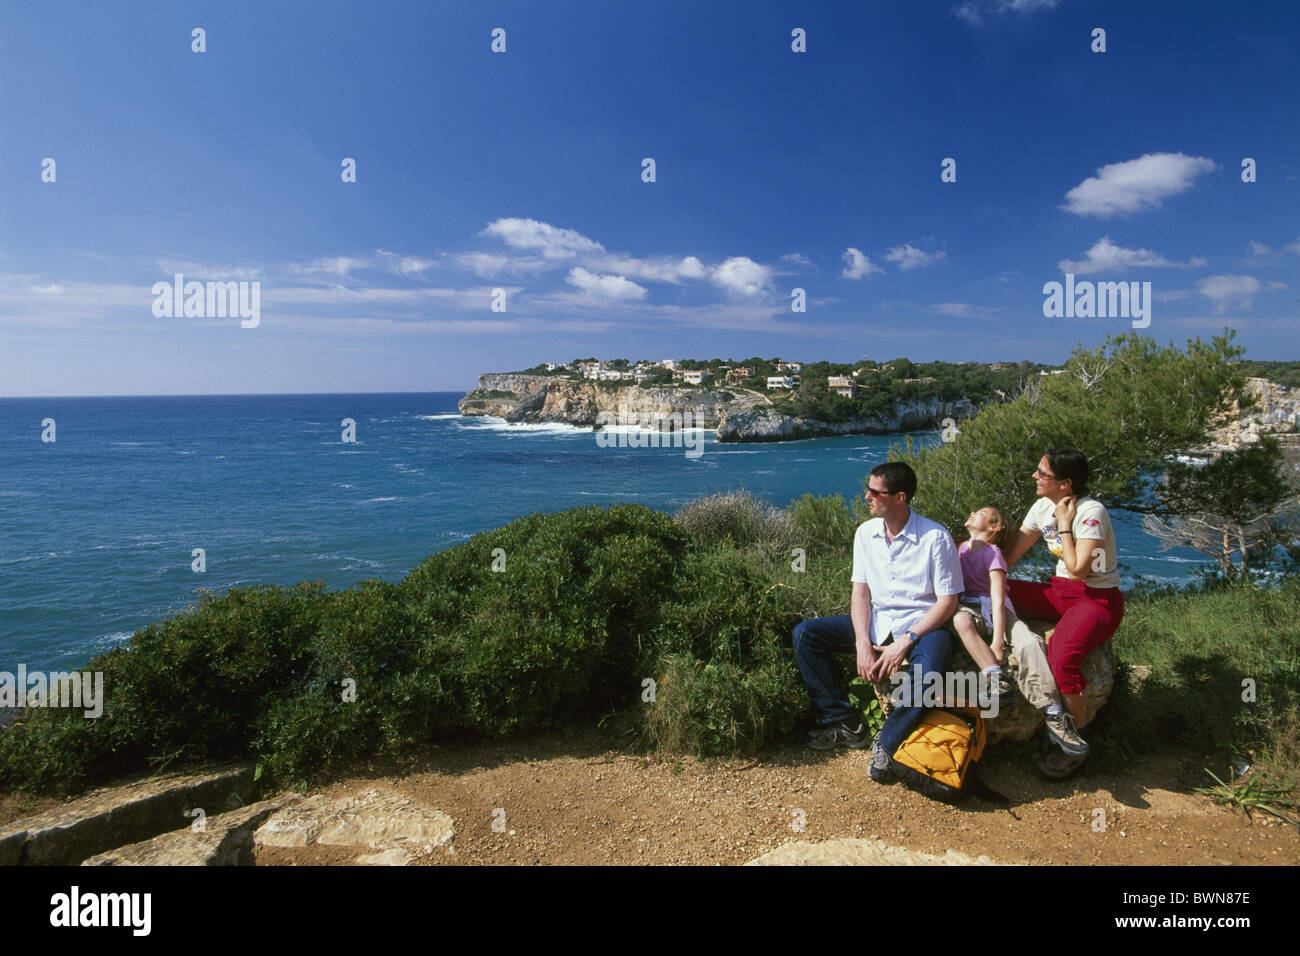 Es Pontas Majorca Balearic islands Spain Europe Cala Santanyi Es Pontas Europe family island coast sea Medi - Stock Image